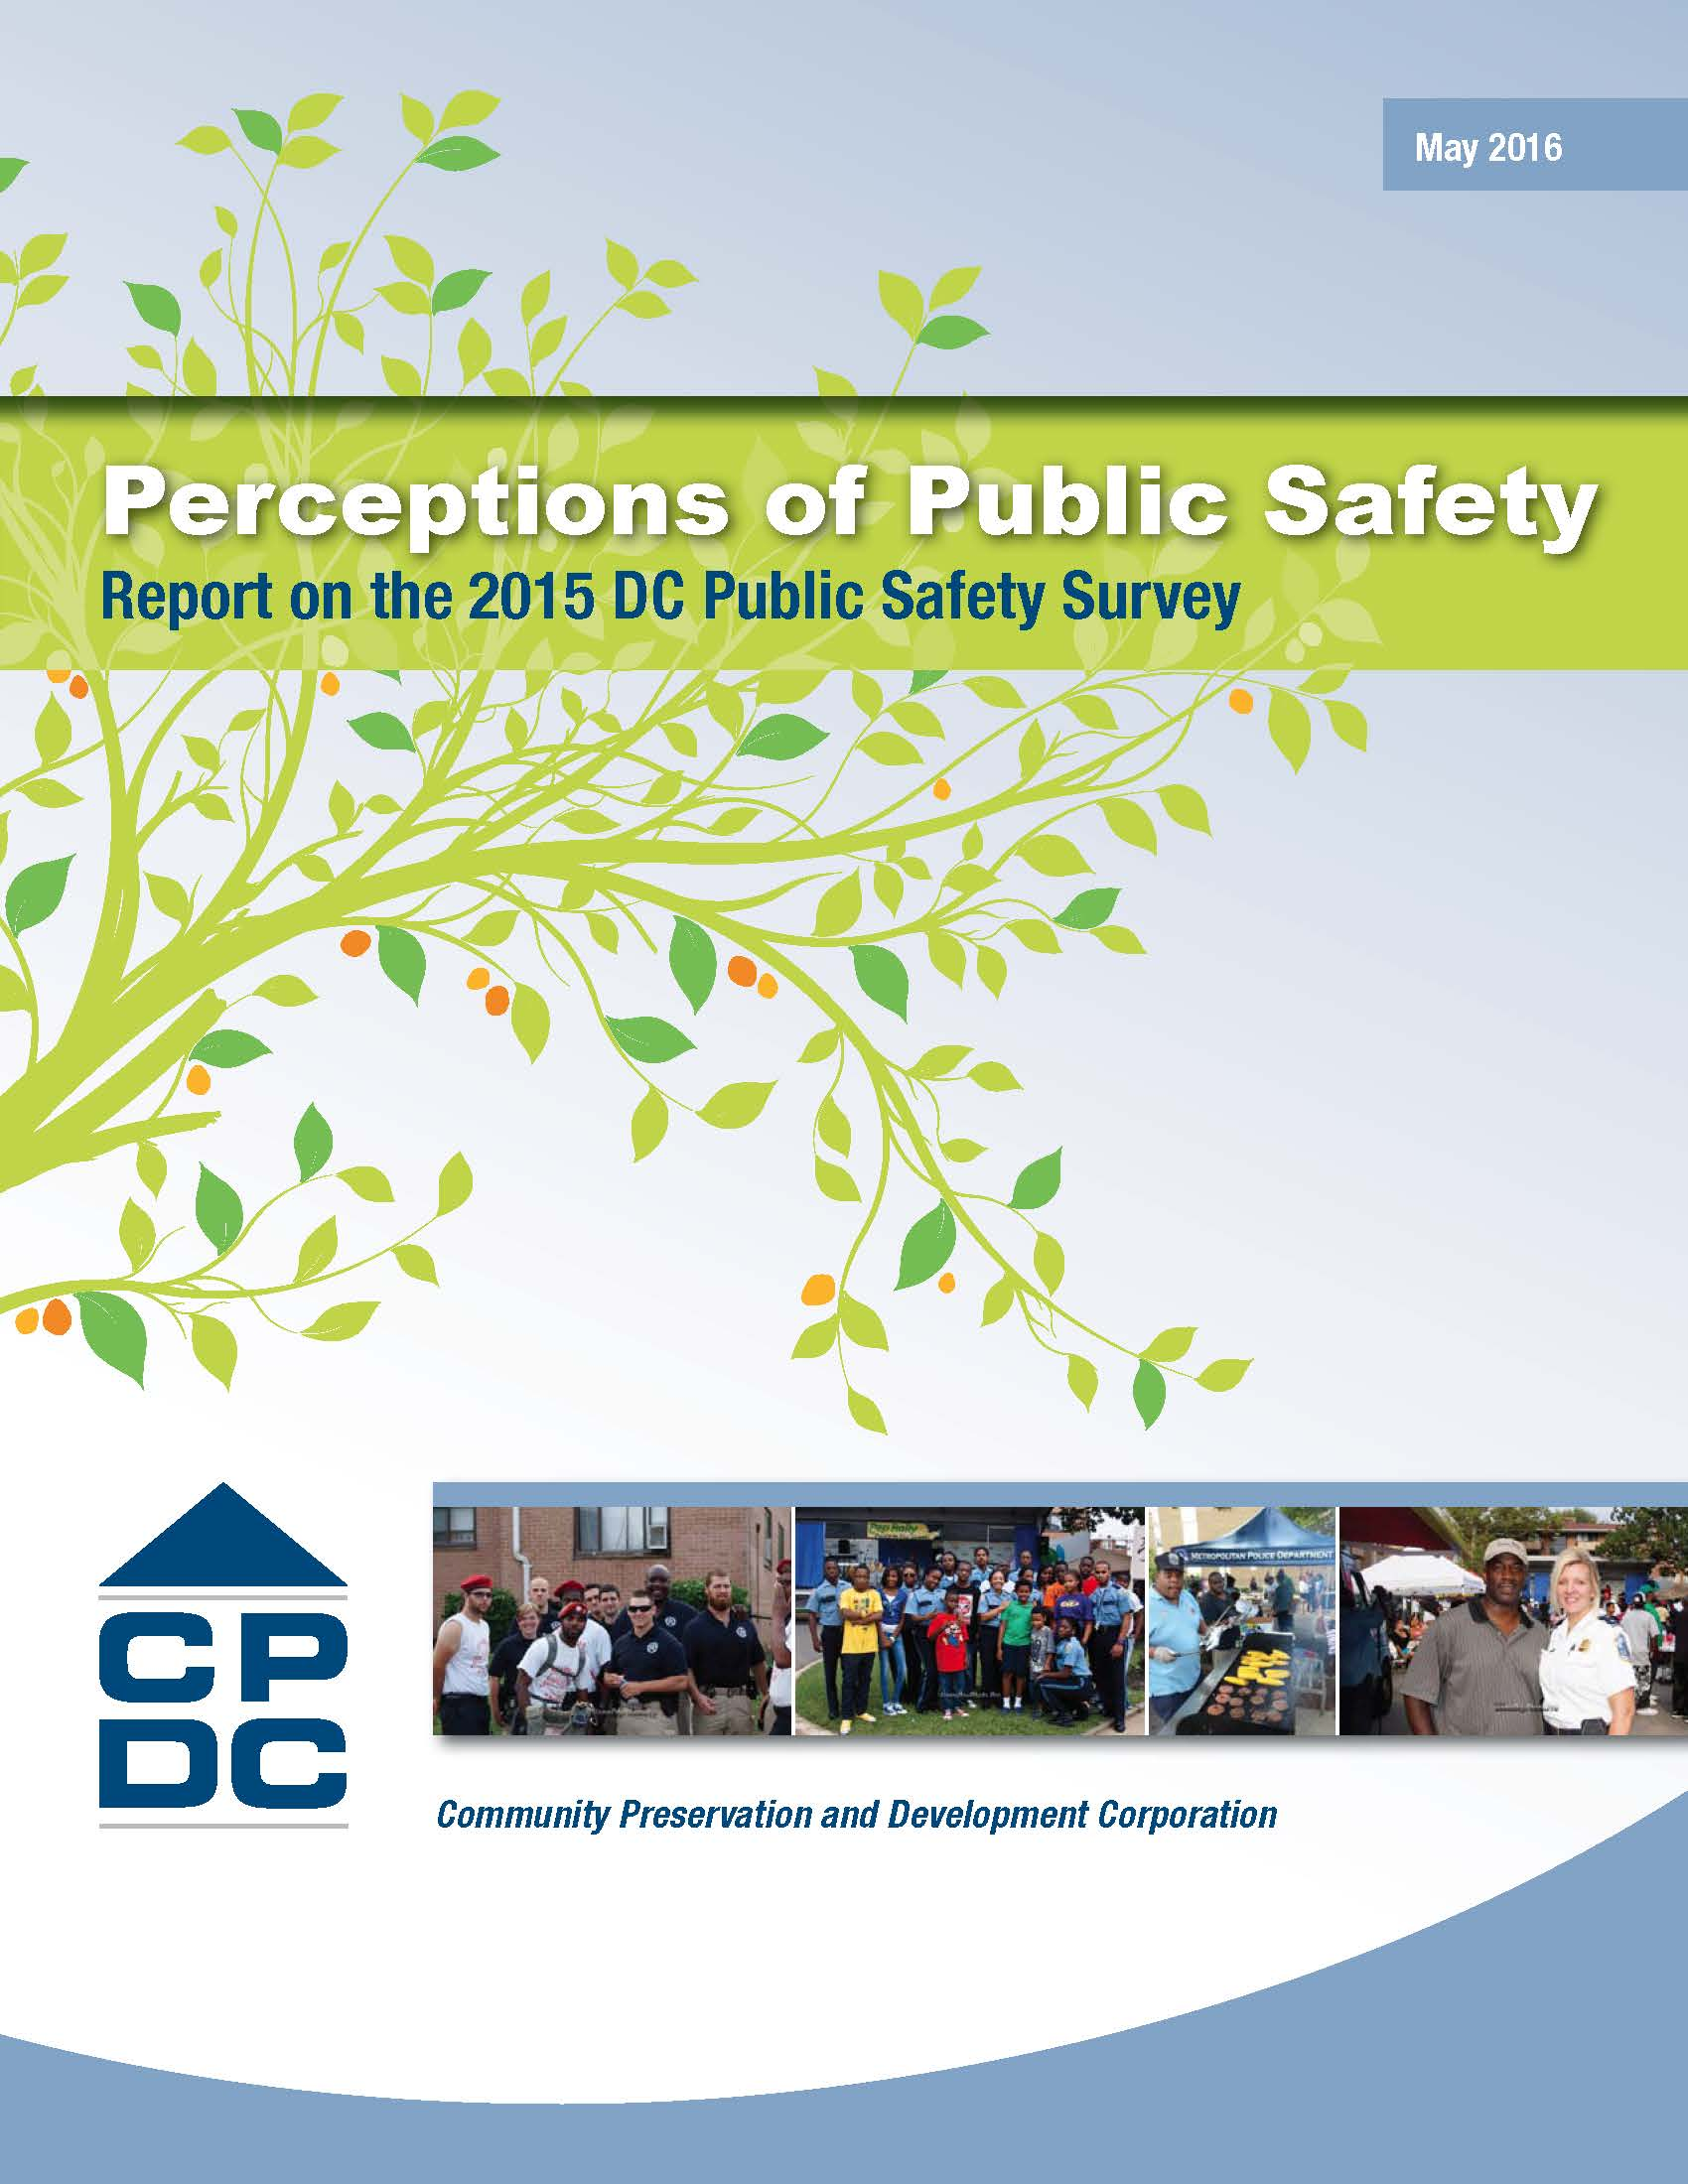 Perceptions of Public Safety Executive Summary